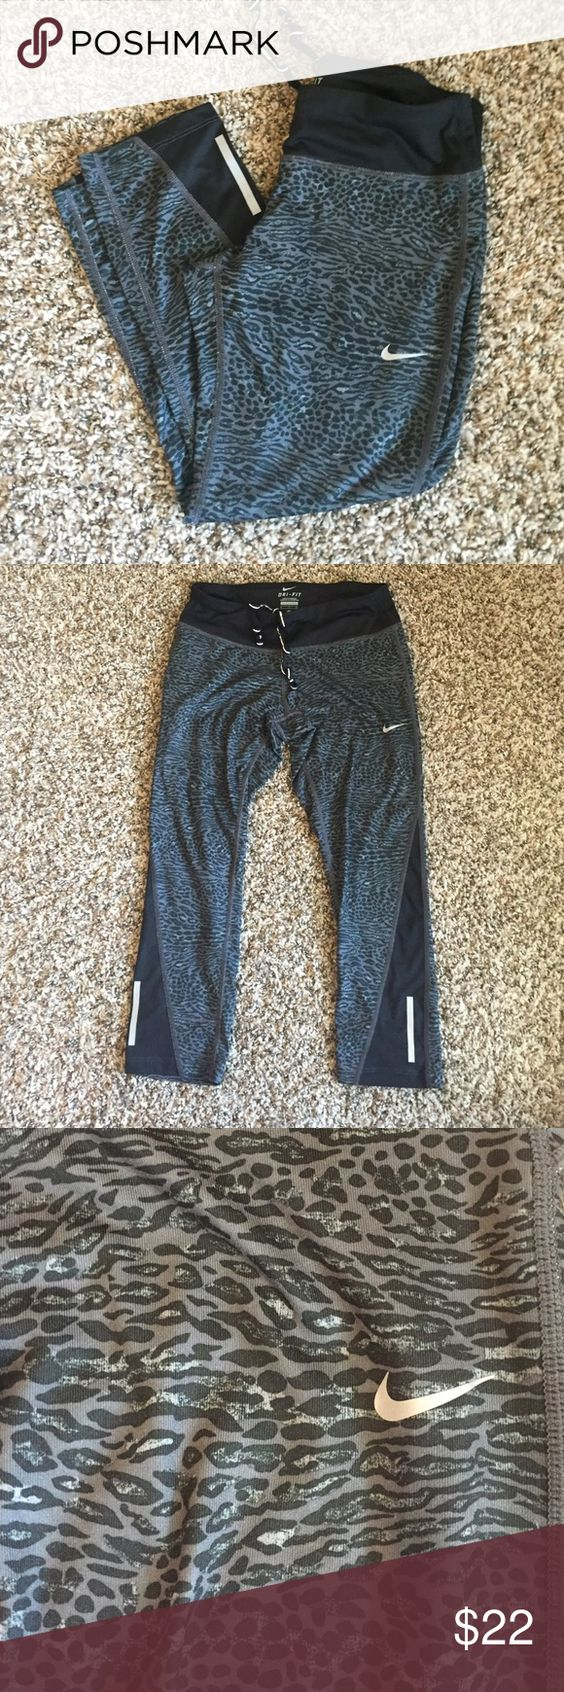 Nike Leopard Leggings These Nike Dri-Fit leggings have a leopard pattern and go to mid calf. They are stretchy, perfect for working out and super cozy. They have only been worn a couple of times and are in like new condition. They come from a smoke free home. ✨ NO TRADES ✨ Nike Pants Leggings